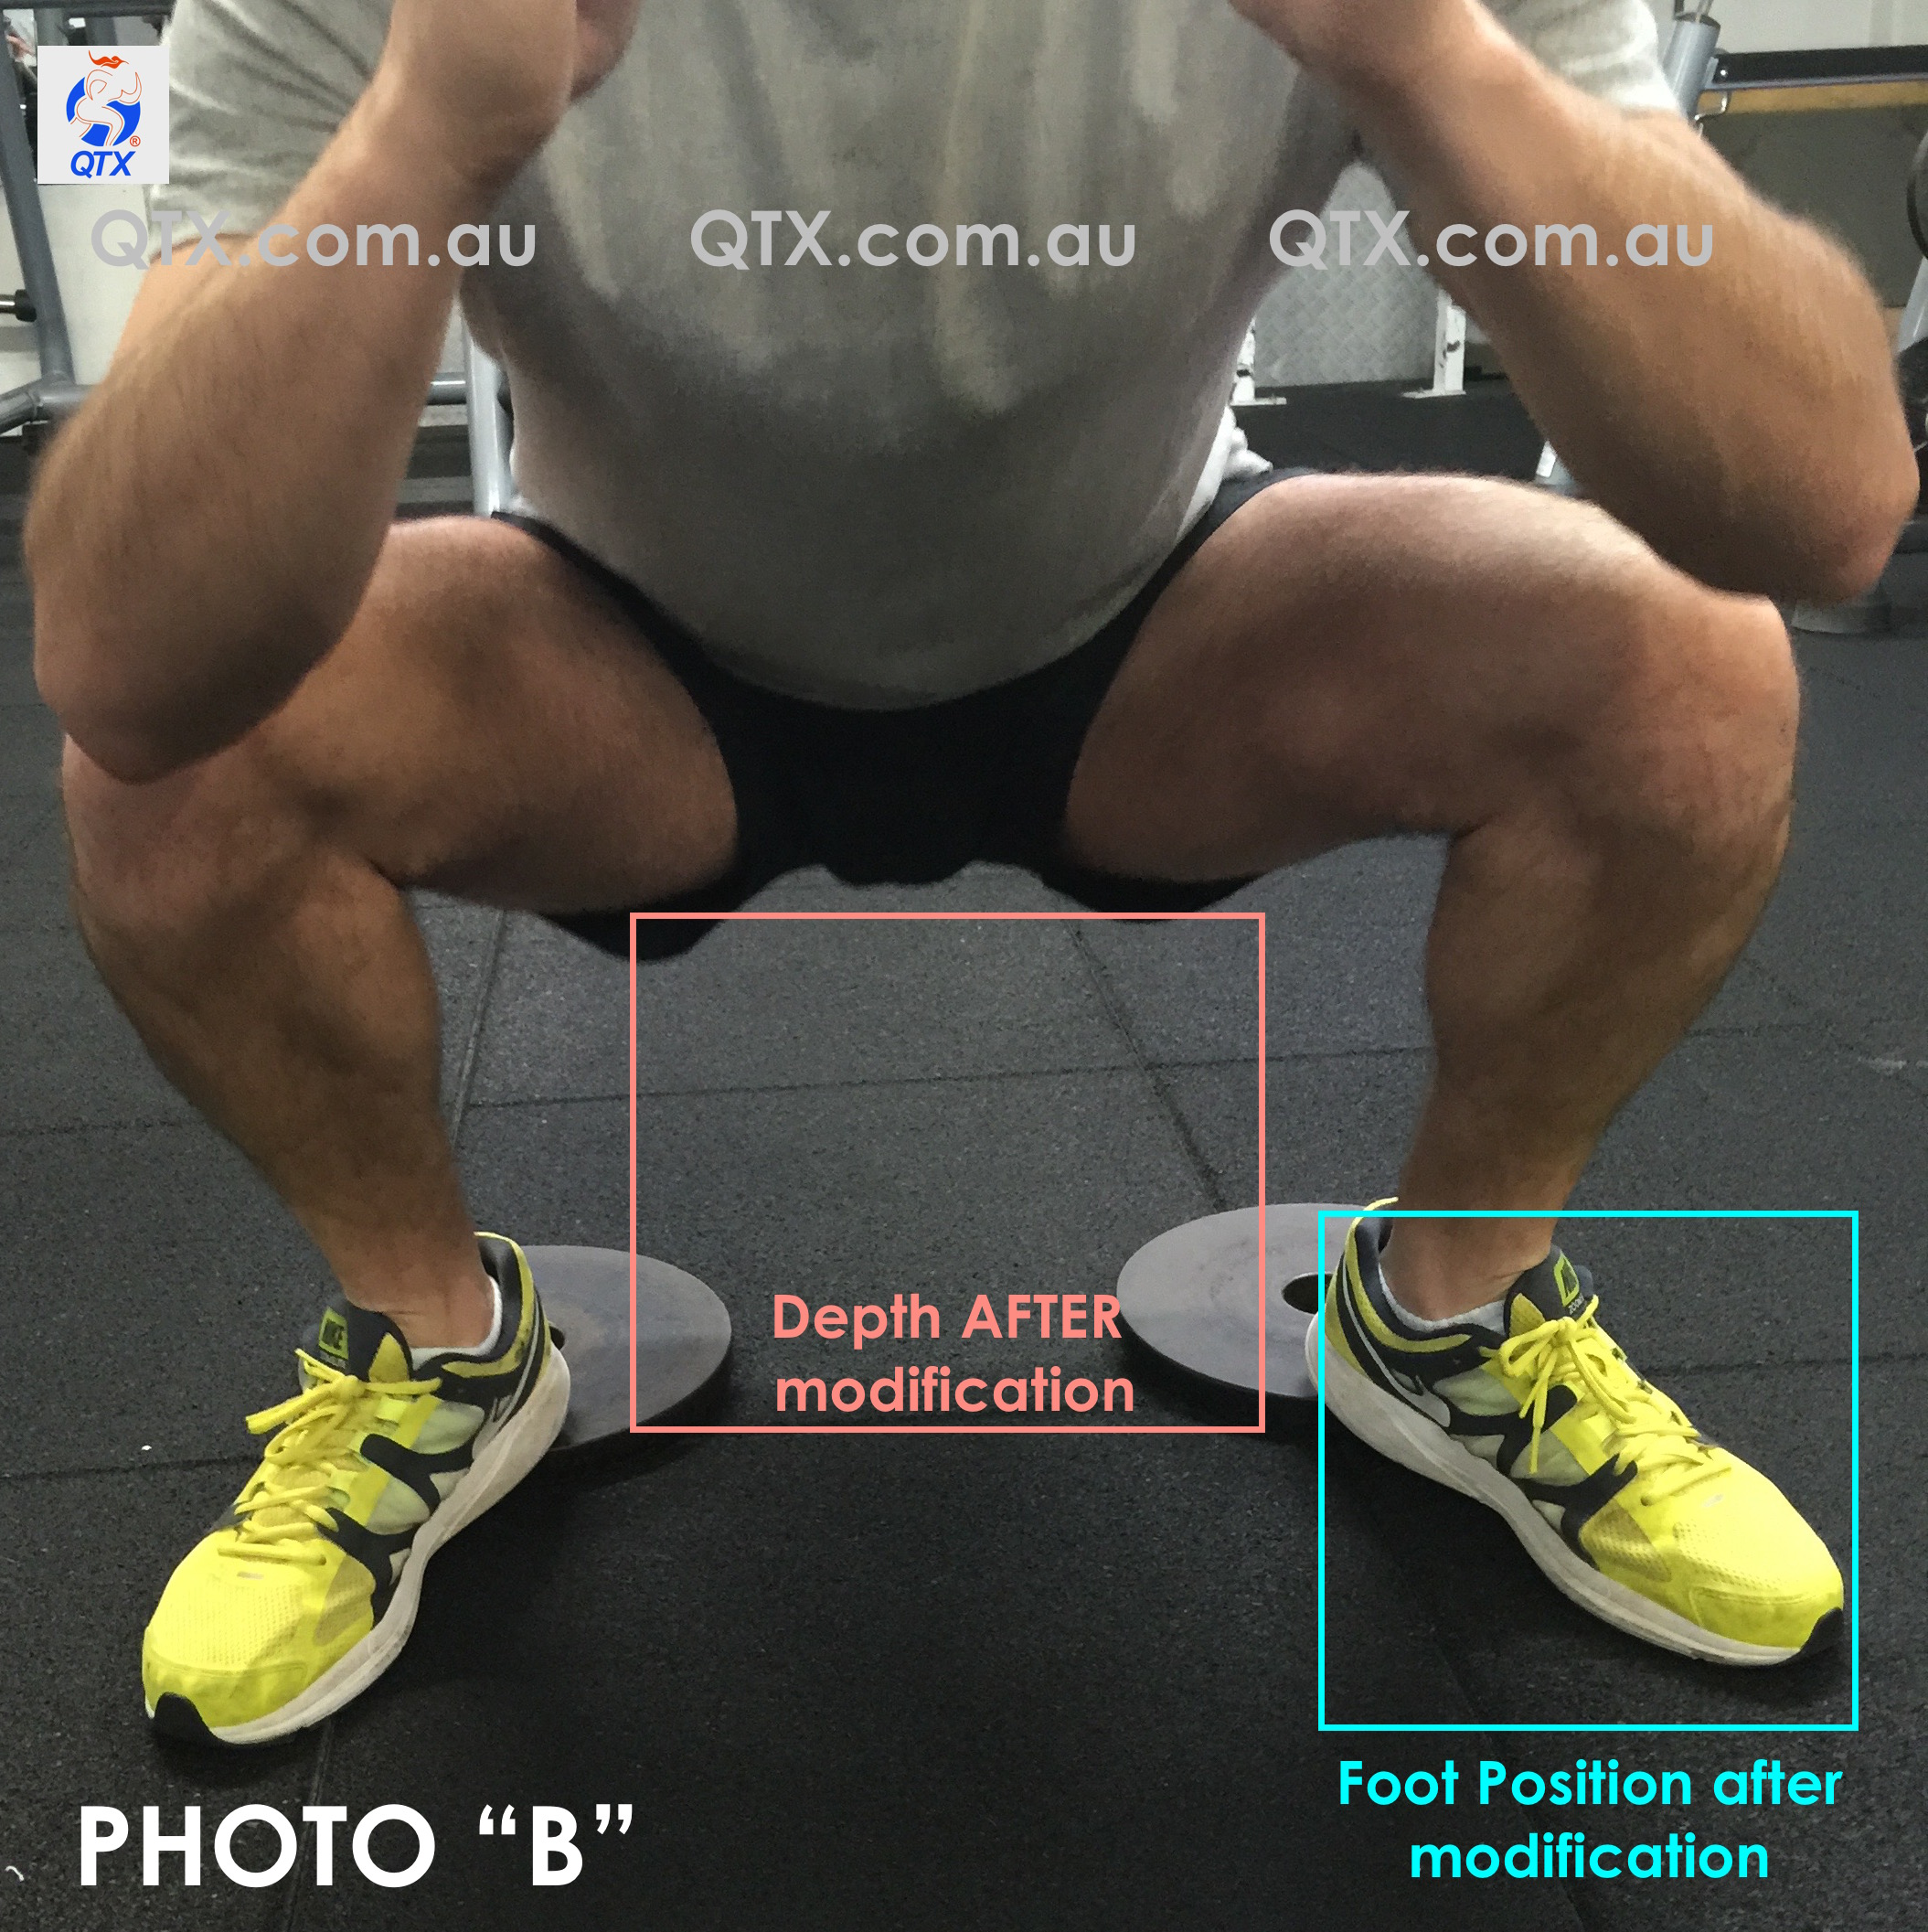 After prescribing a slight external rotation of the left foot, the Client is now able to squat a bit deeper while keeping his spine neutral and achieving optimal range of motion of the hips. Proper  lifting shoes were recommended for movements like fron squats and Olympic lifting movements.